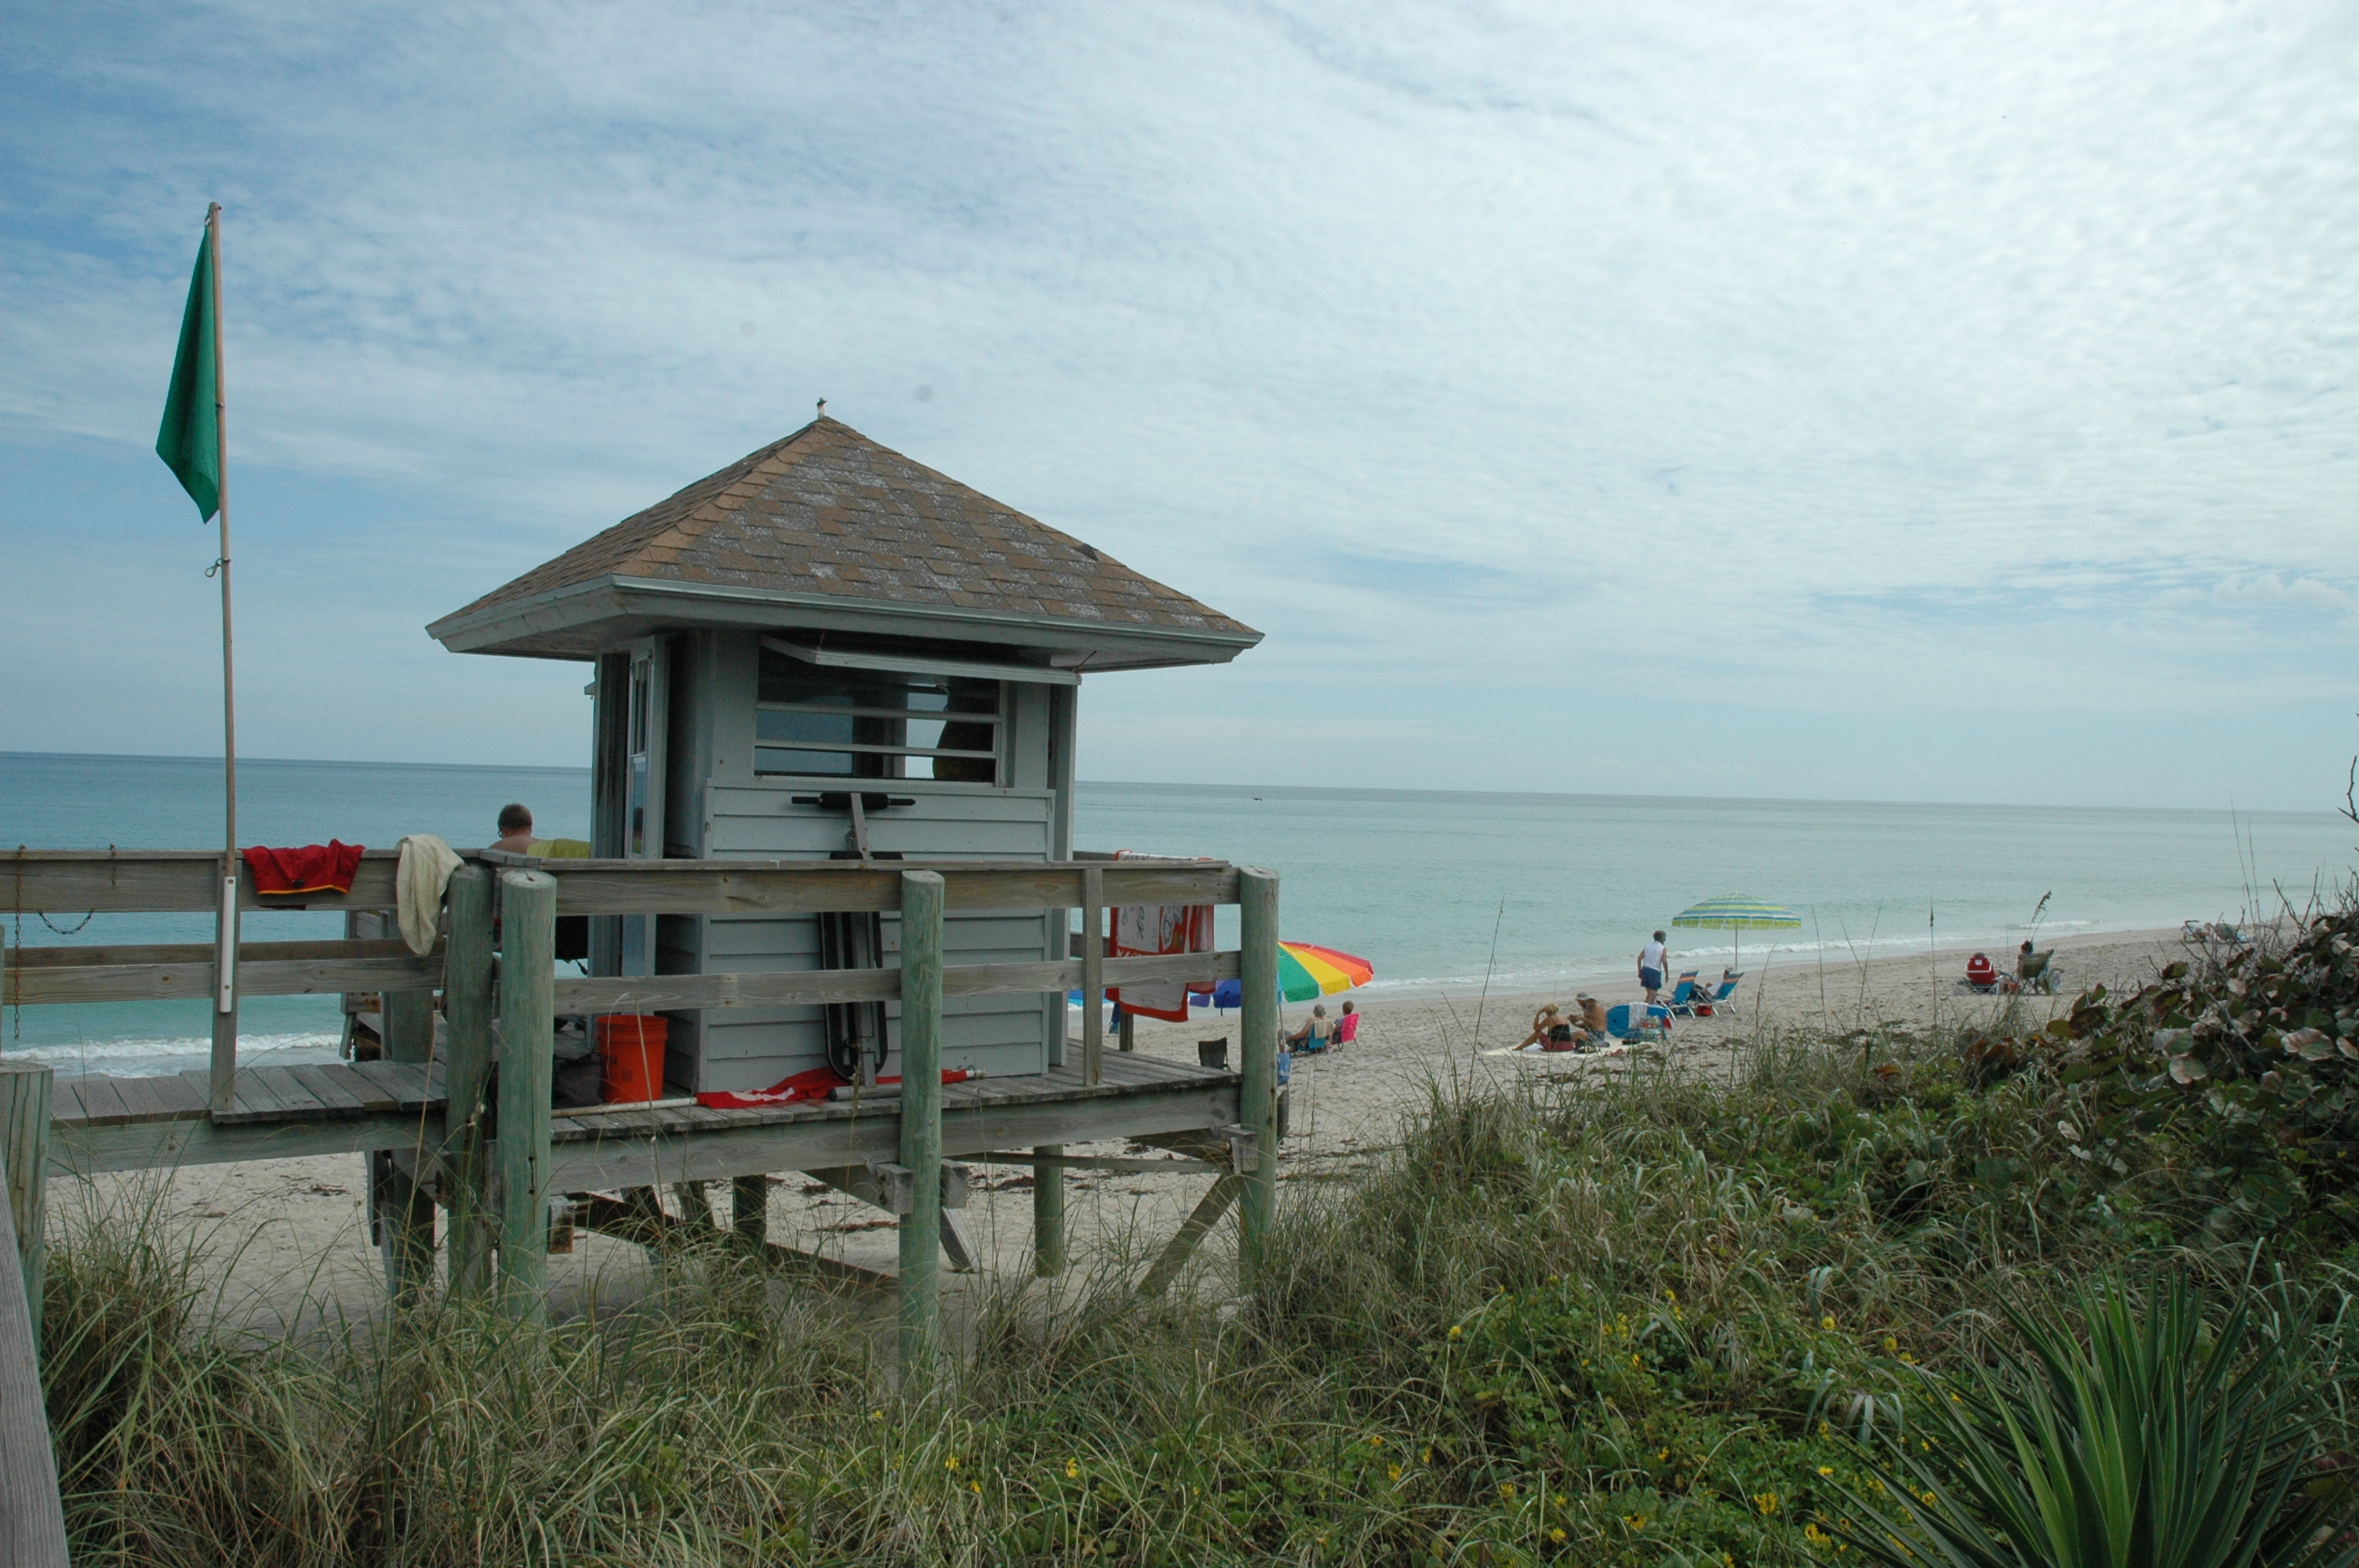 Waveland Beach Lifeguard Tower